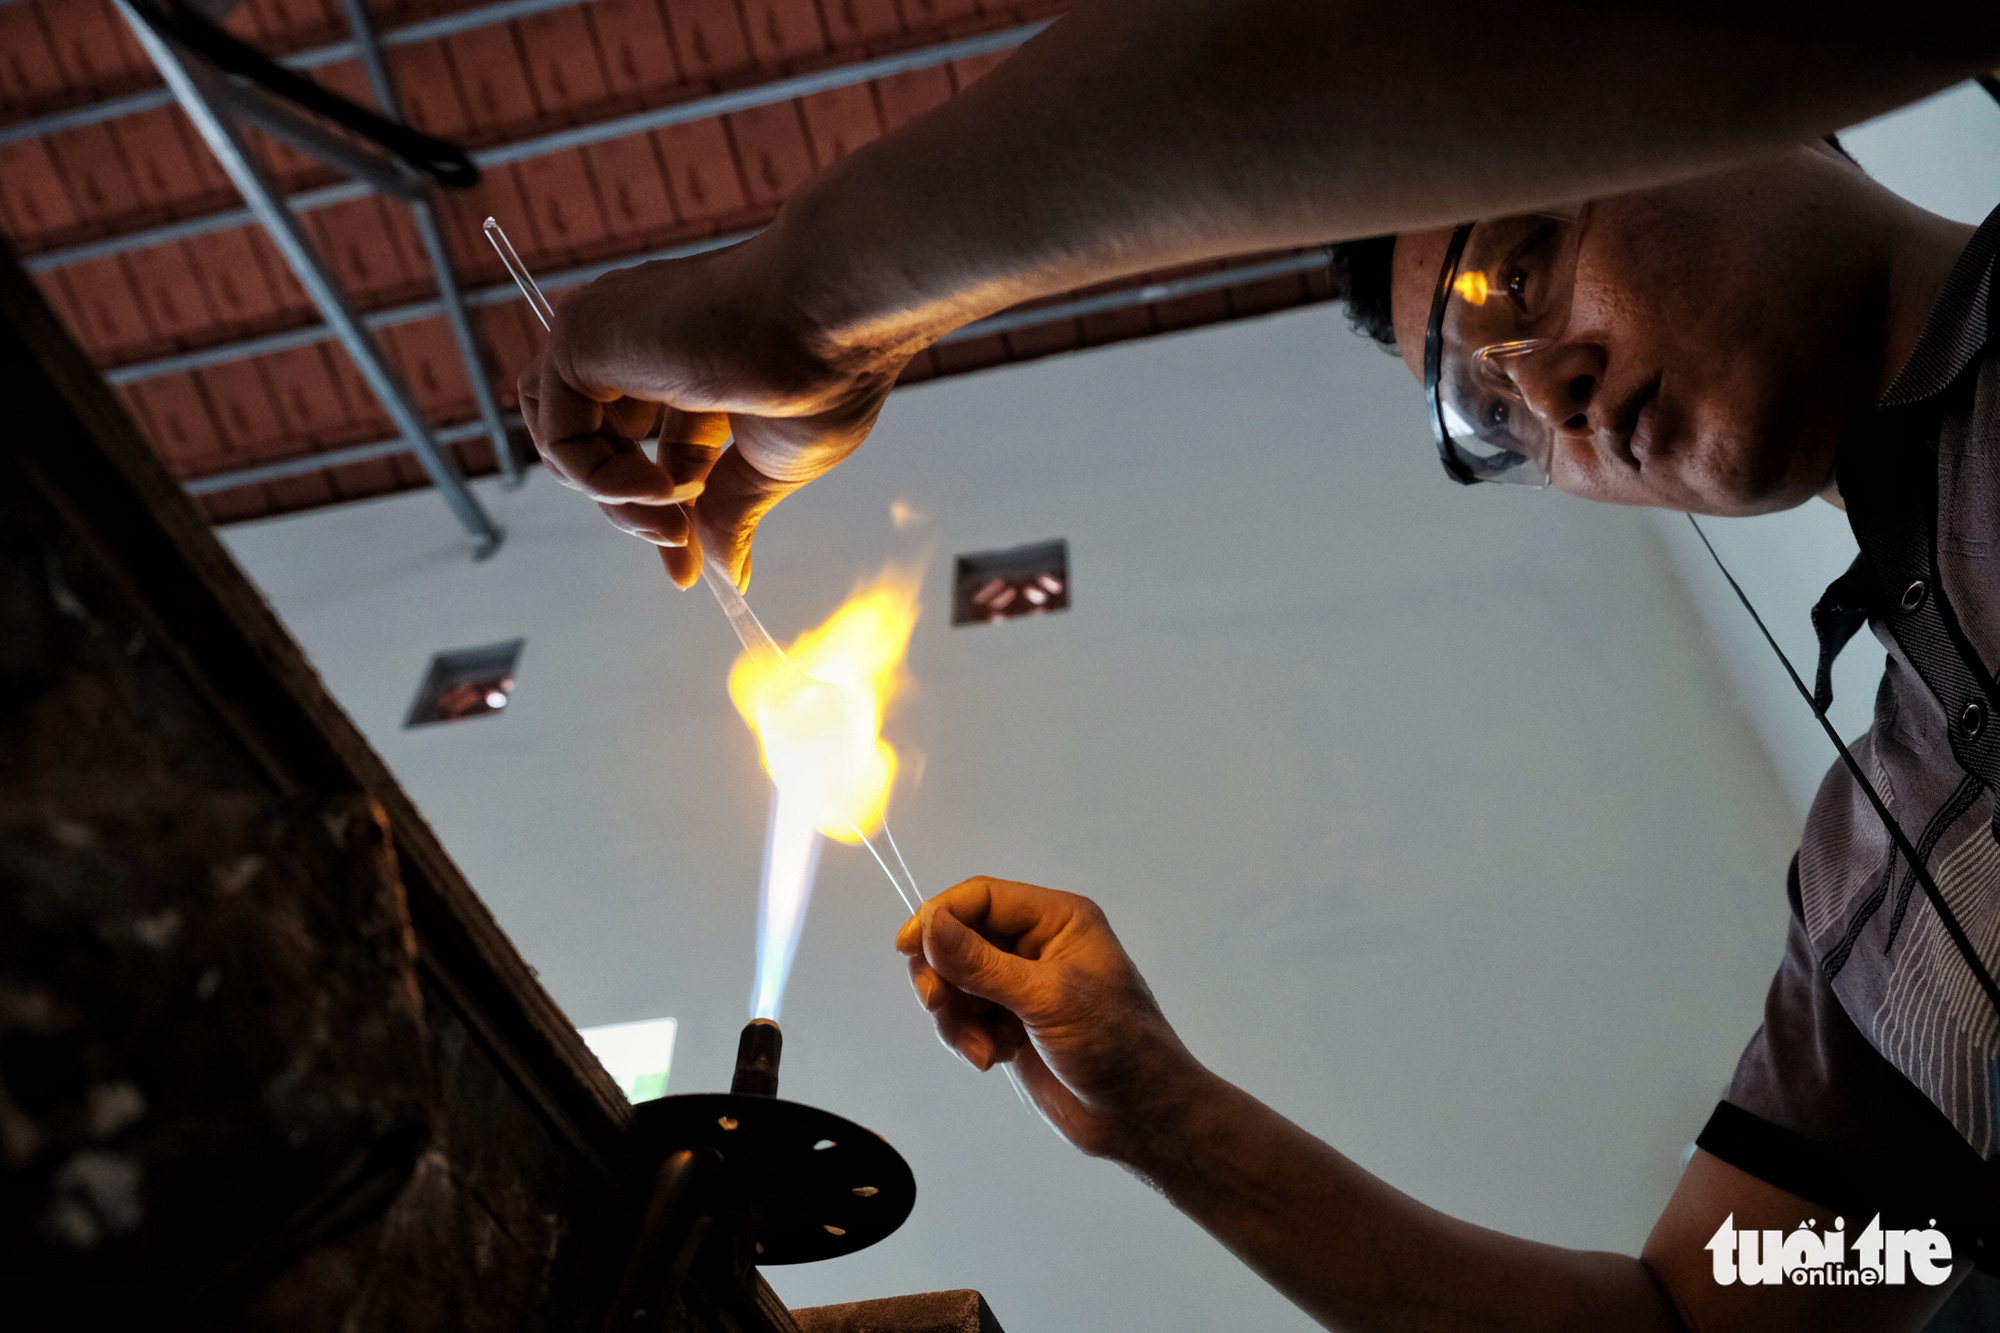 Hanoi's skilled glass-blowers keeping the flame alive